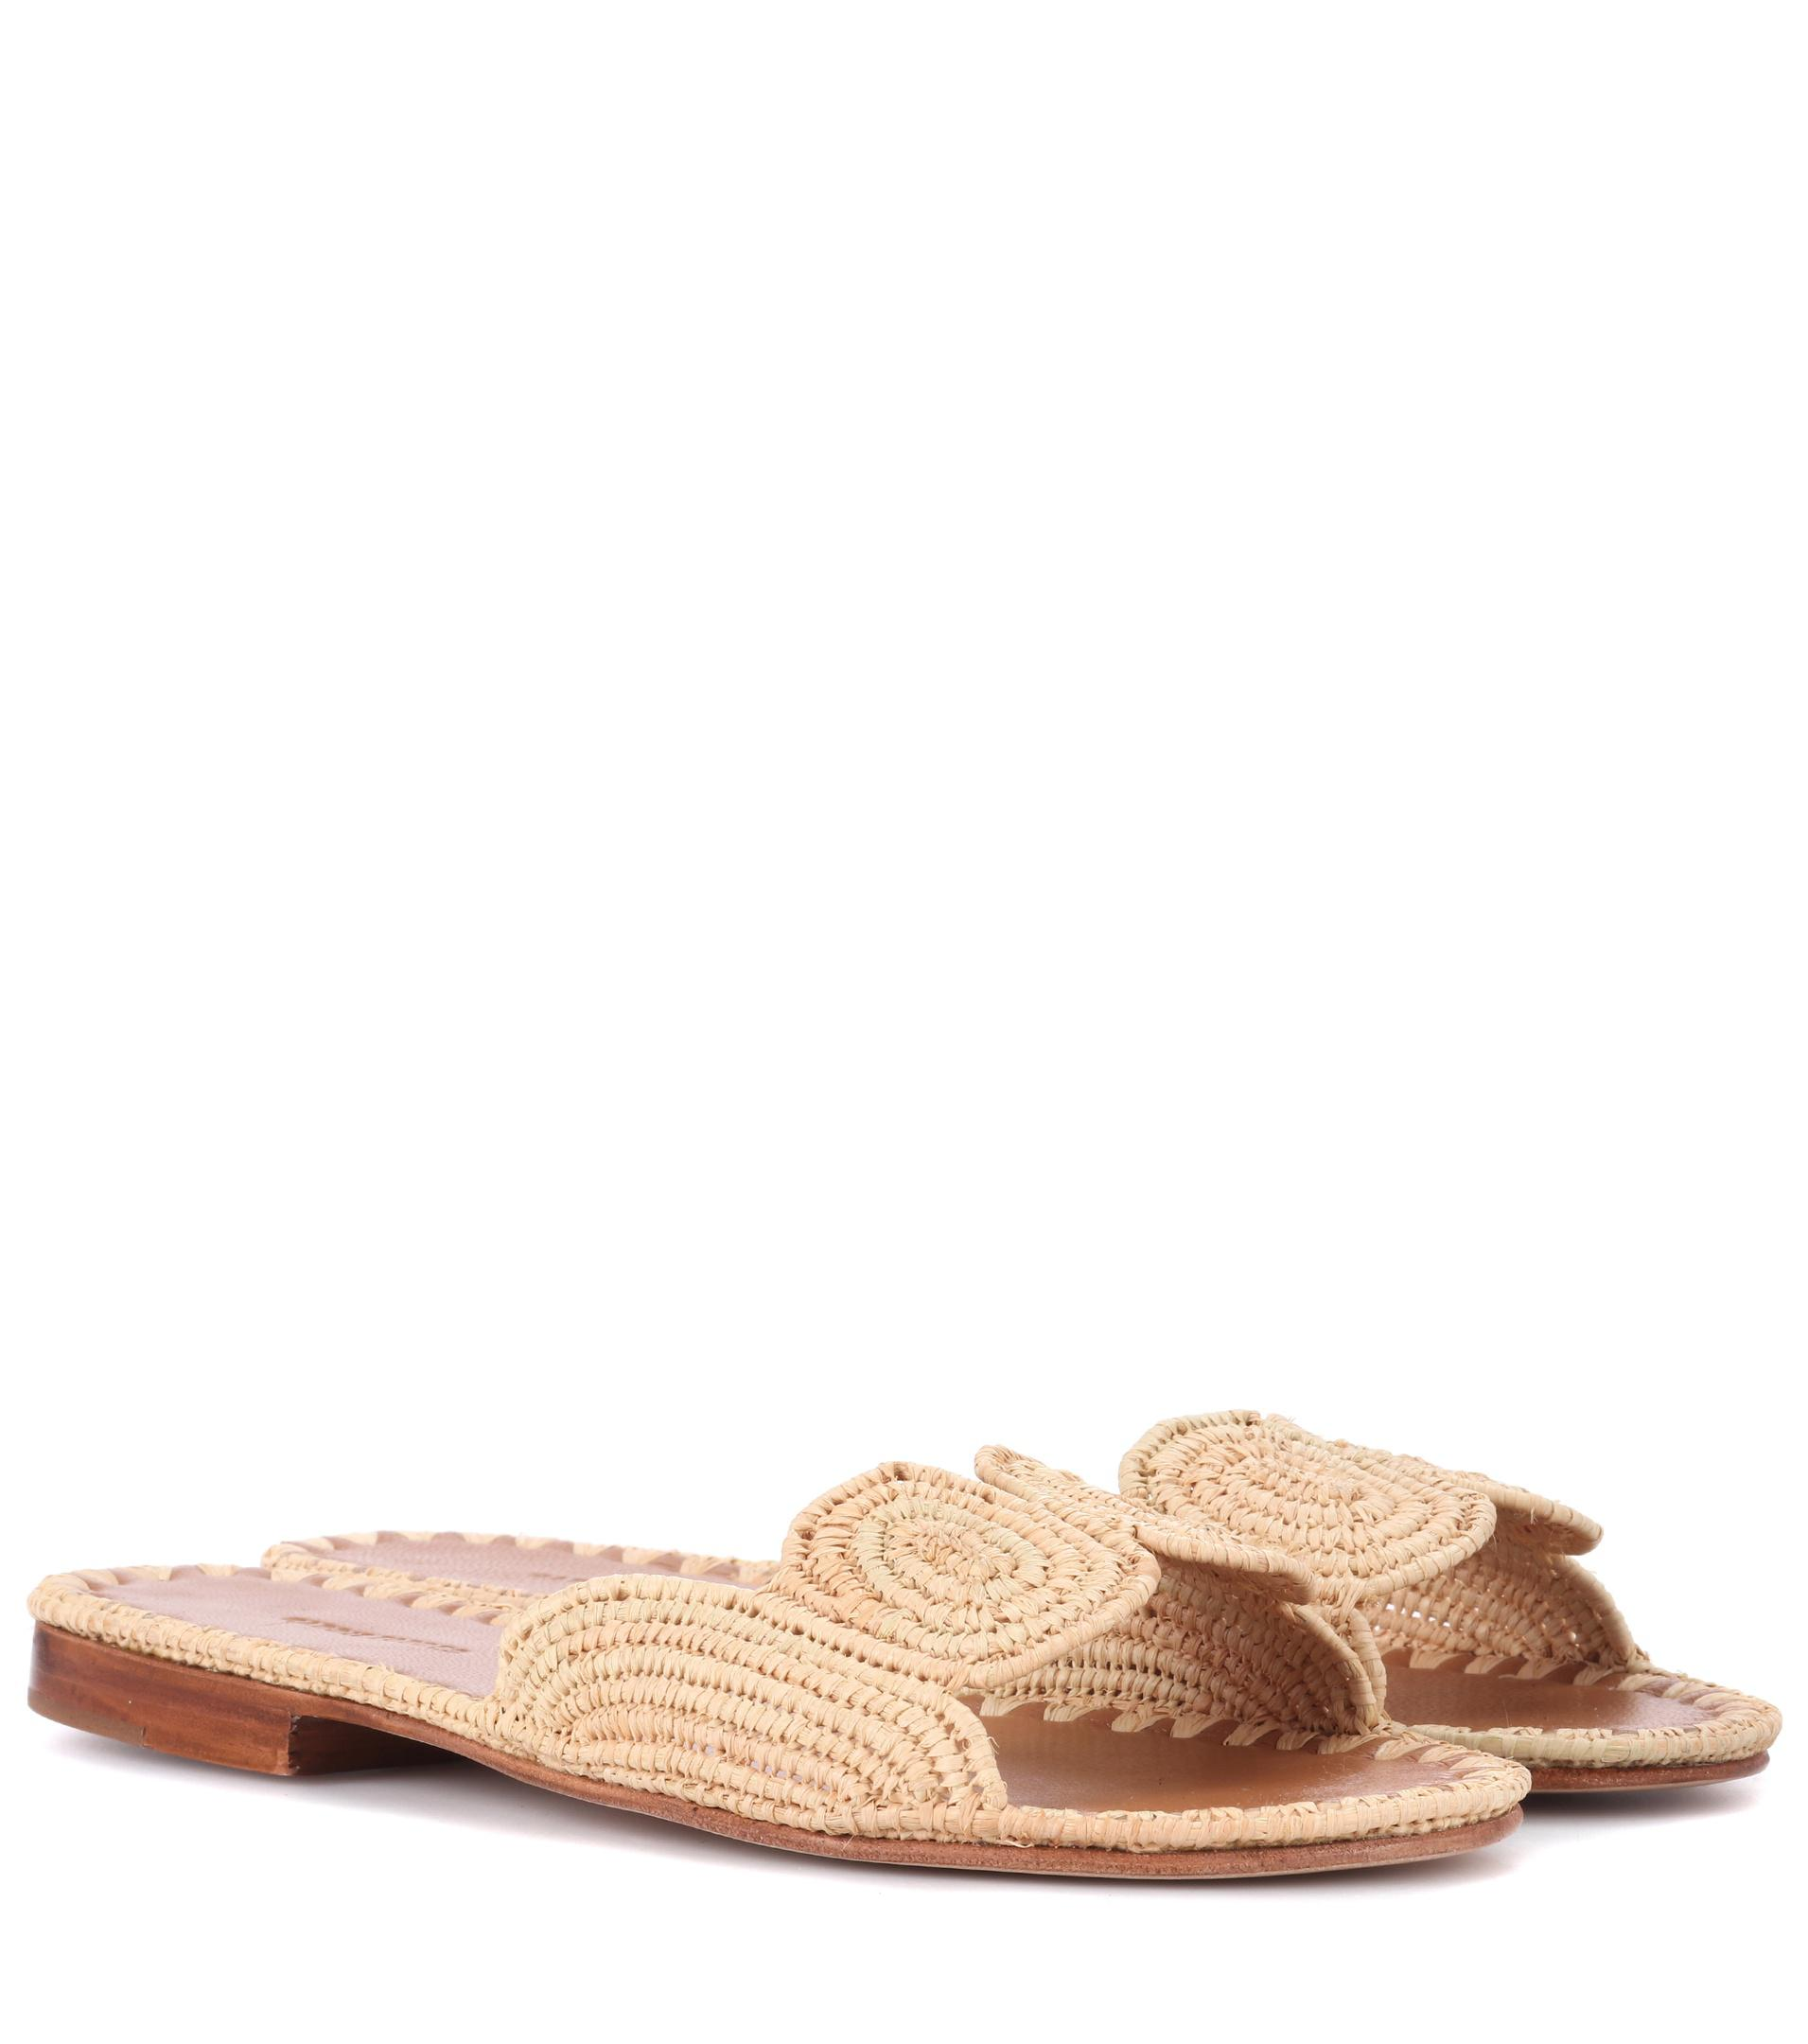 footlocker sale online clearance 2014 newest Carrie Forbes Raffia Slide Sandals cheap real authentic free shipping factory outlet eastbay cheap online sVJLl